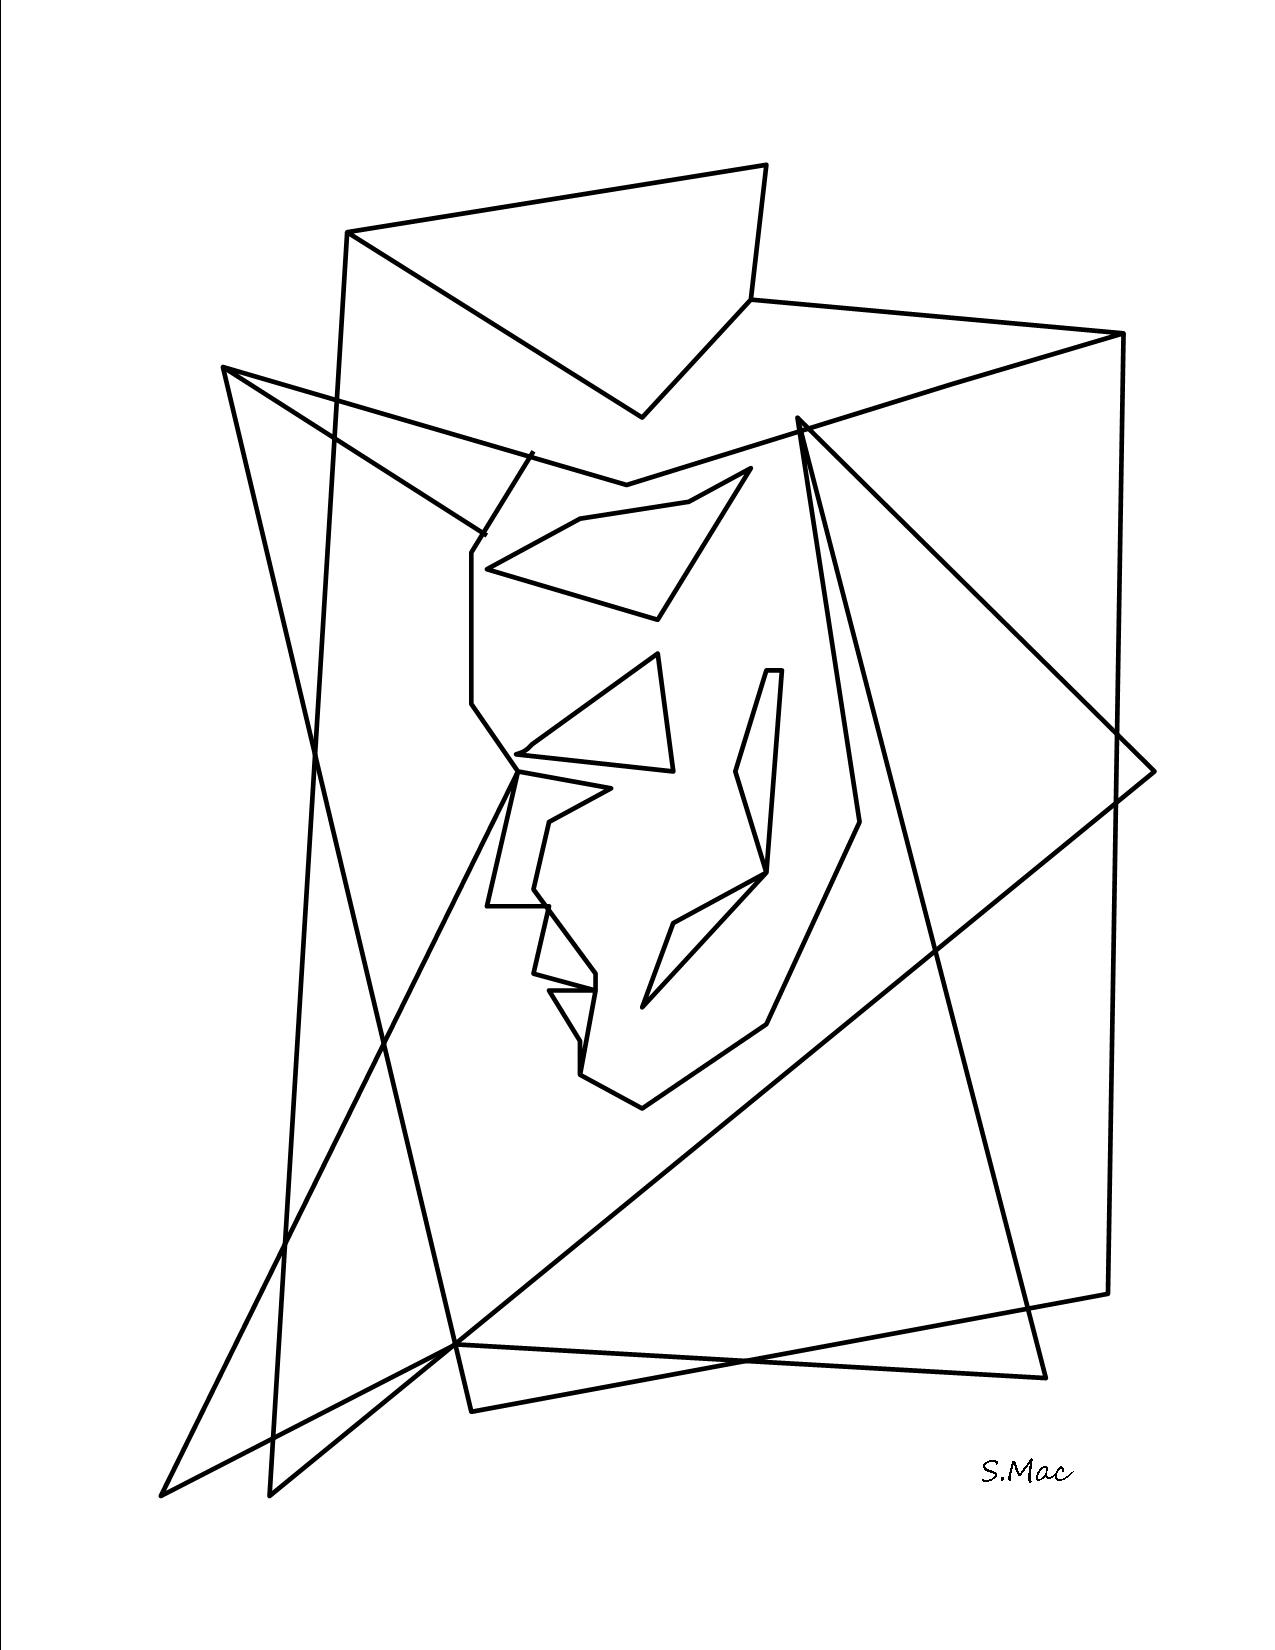 1275x1650 Abstract Coloring Pages S.mac's Place To Be